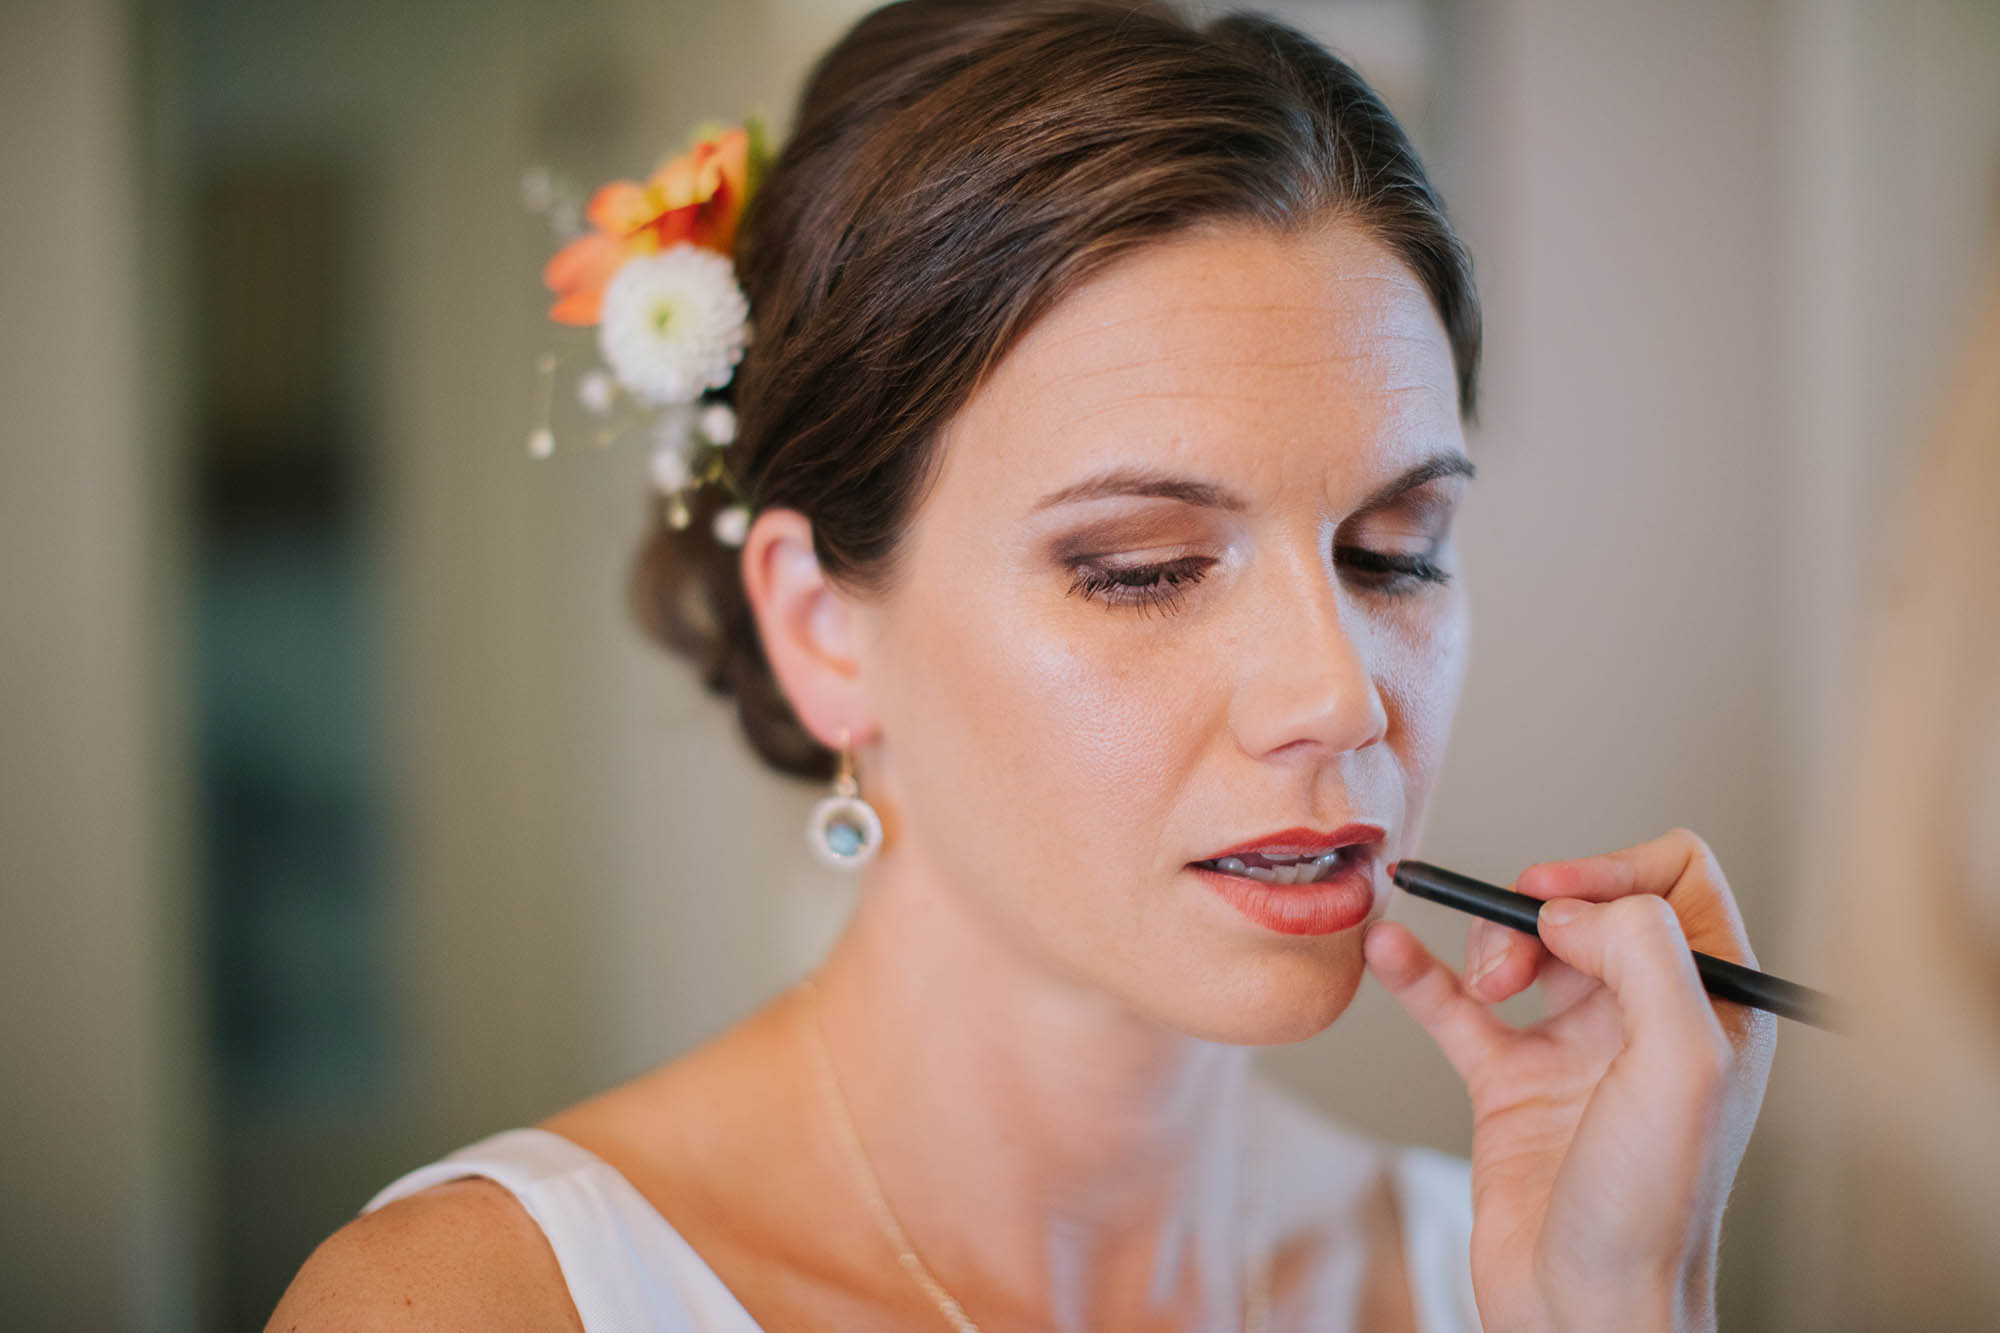 Wedding Day Makeup being applied